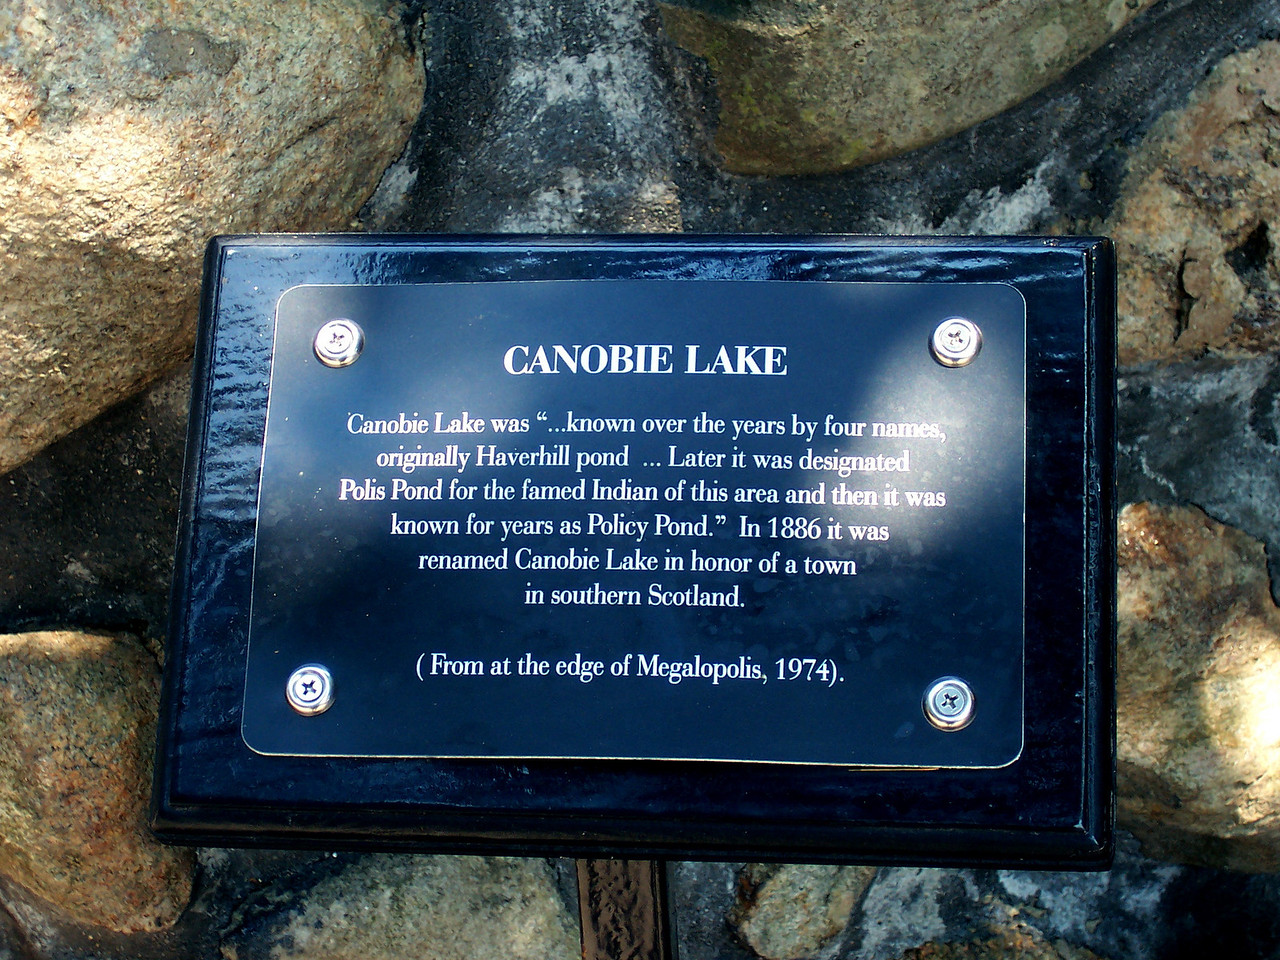 There seemed to be new signs like this throughout the park, with tree names and historical facts.